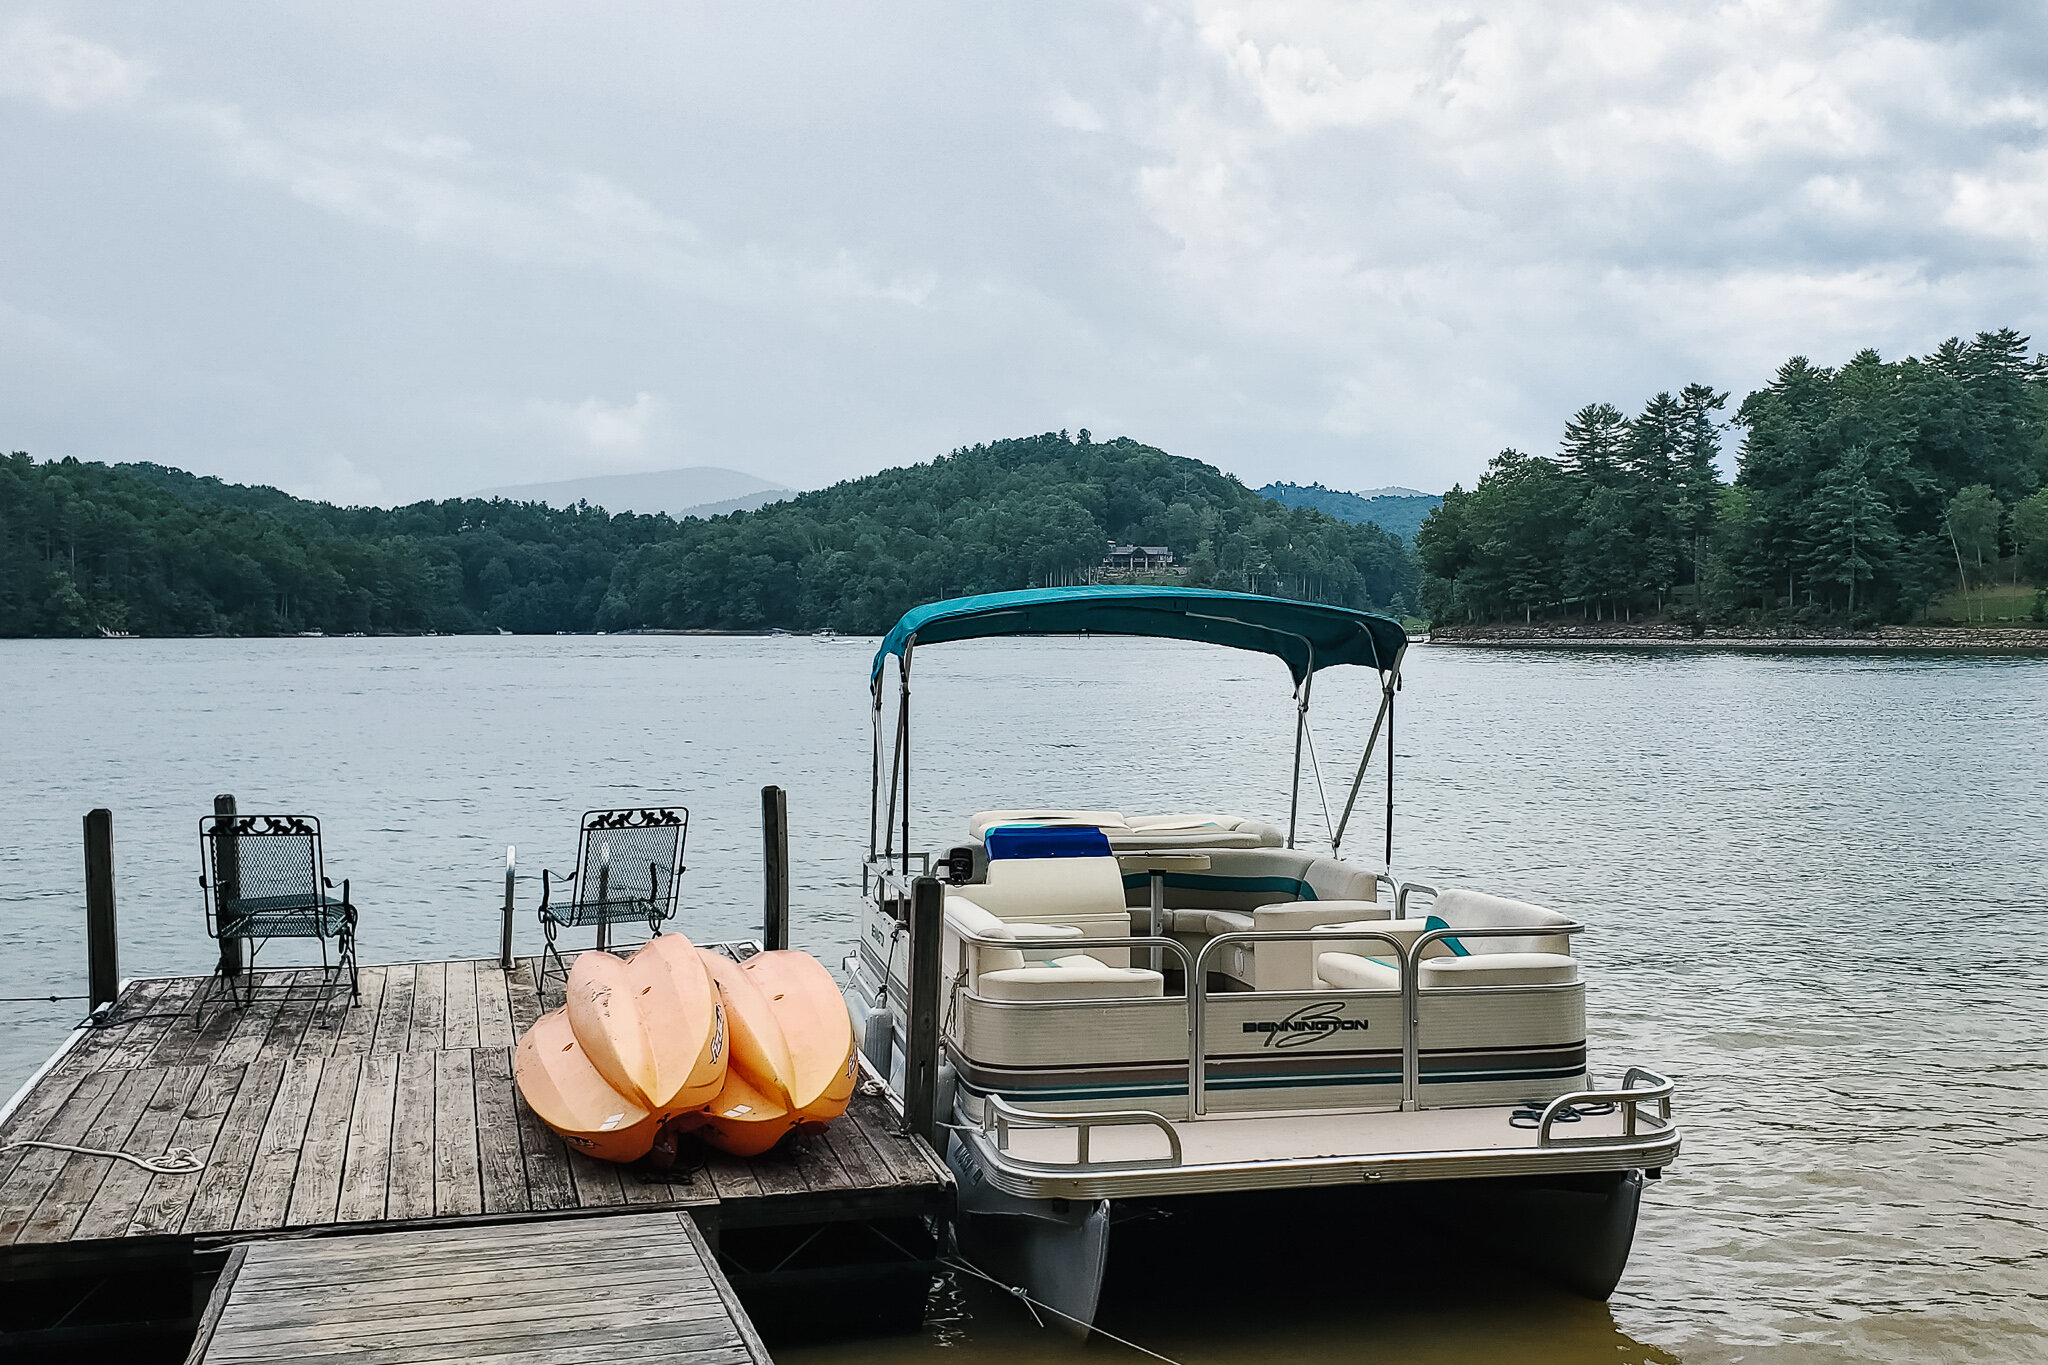 Lake Glenville, North Carolina, where you can boat and kayak (c) Anna Lanfreschi